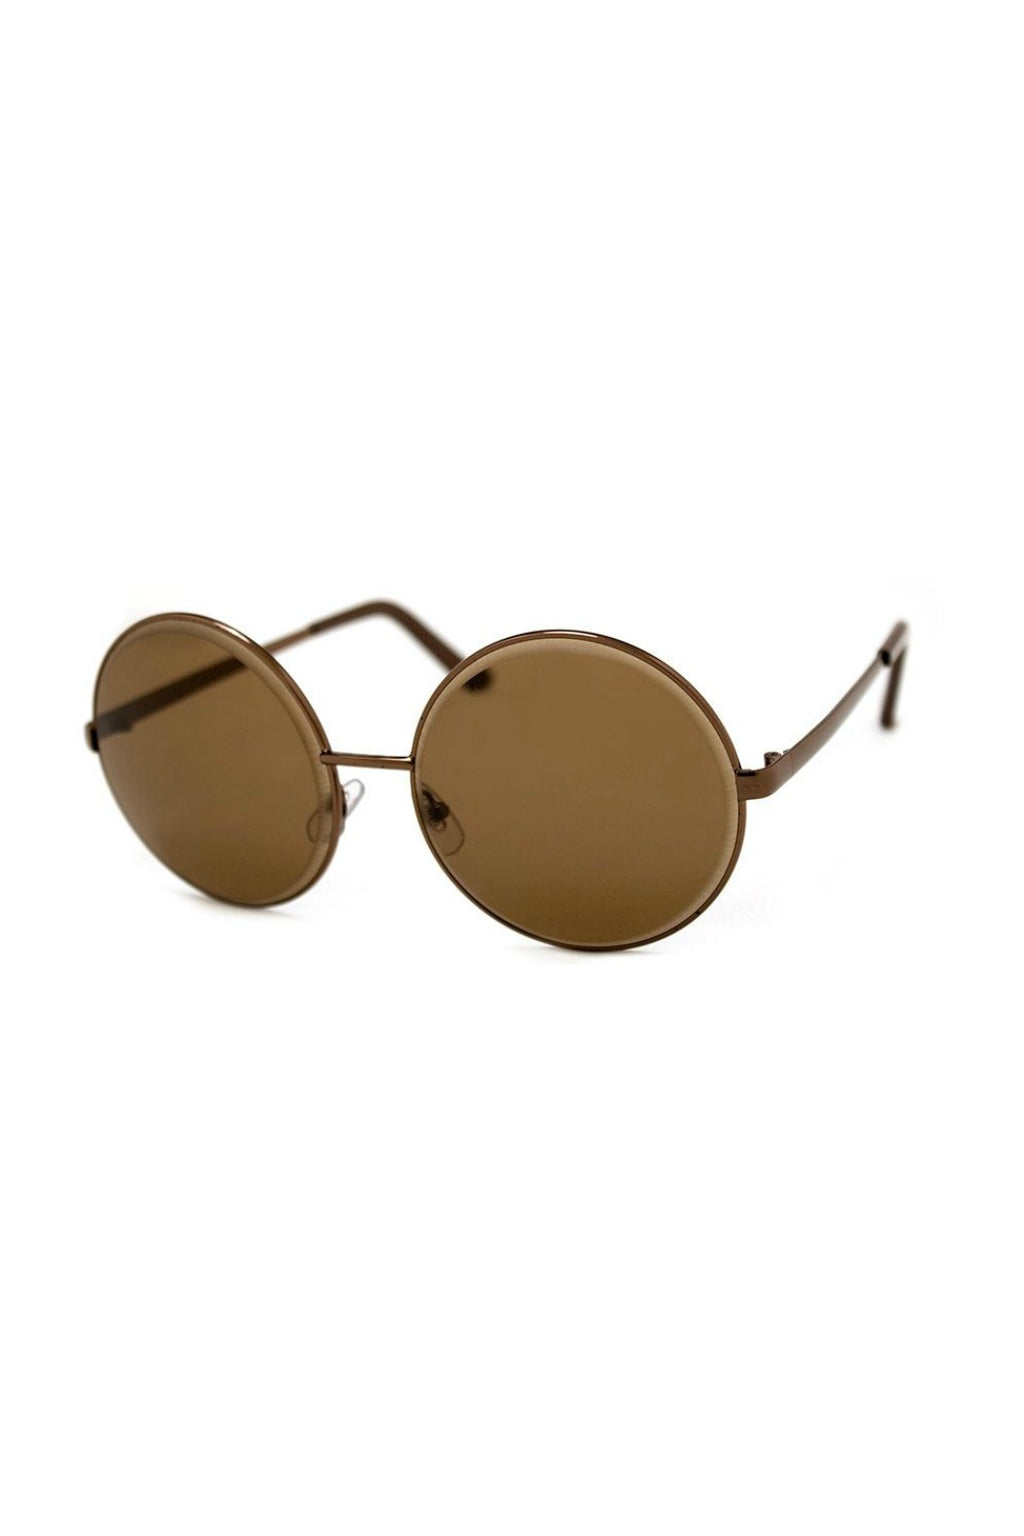 Global Sunnies - Bronze/Brown